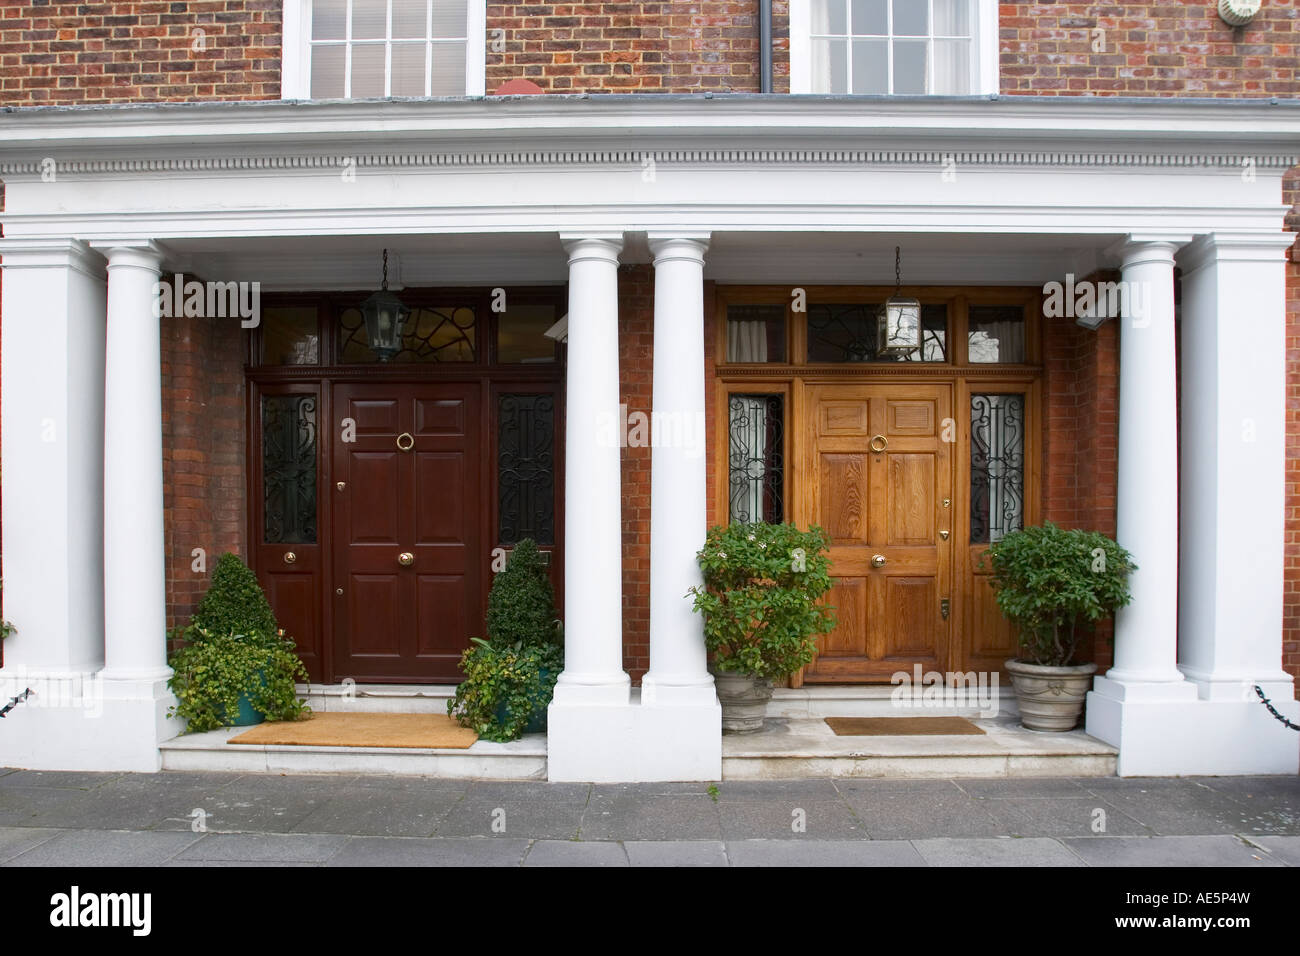 Two Affluent Residential Front Entrances With Wood Doors Columns And Potted  Plants In South Kensington London England